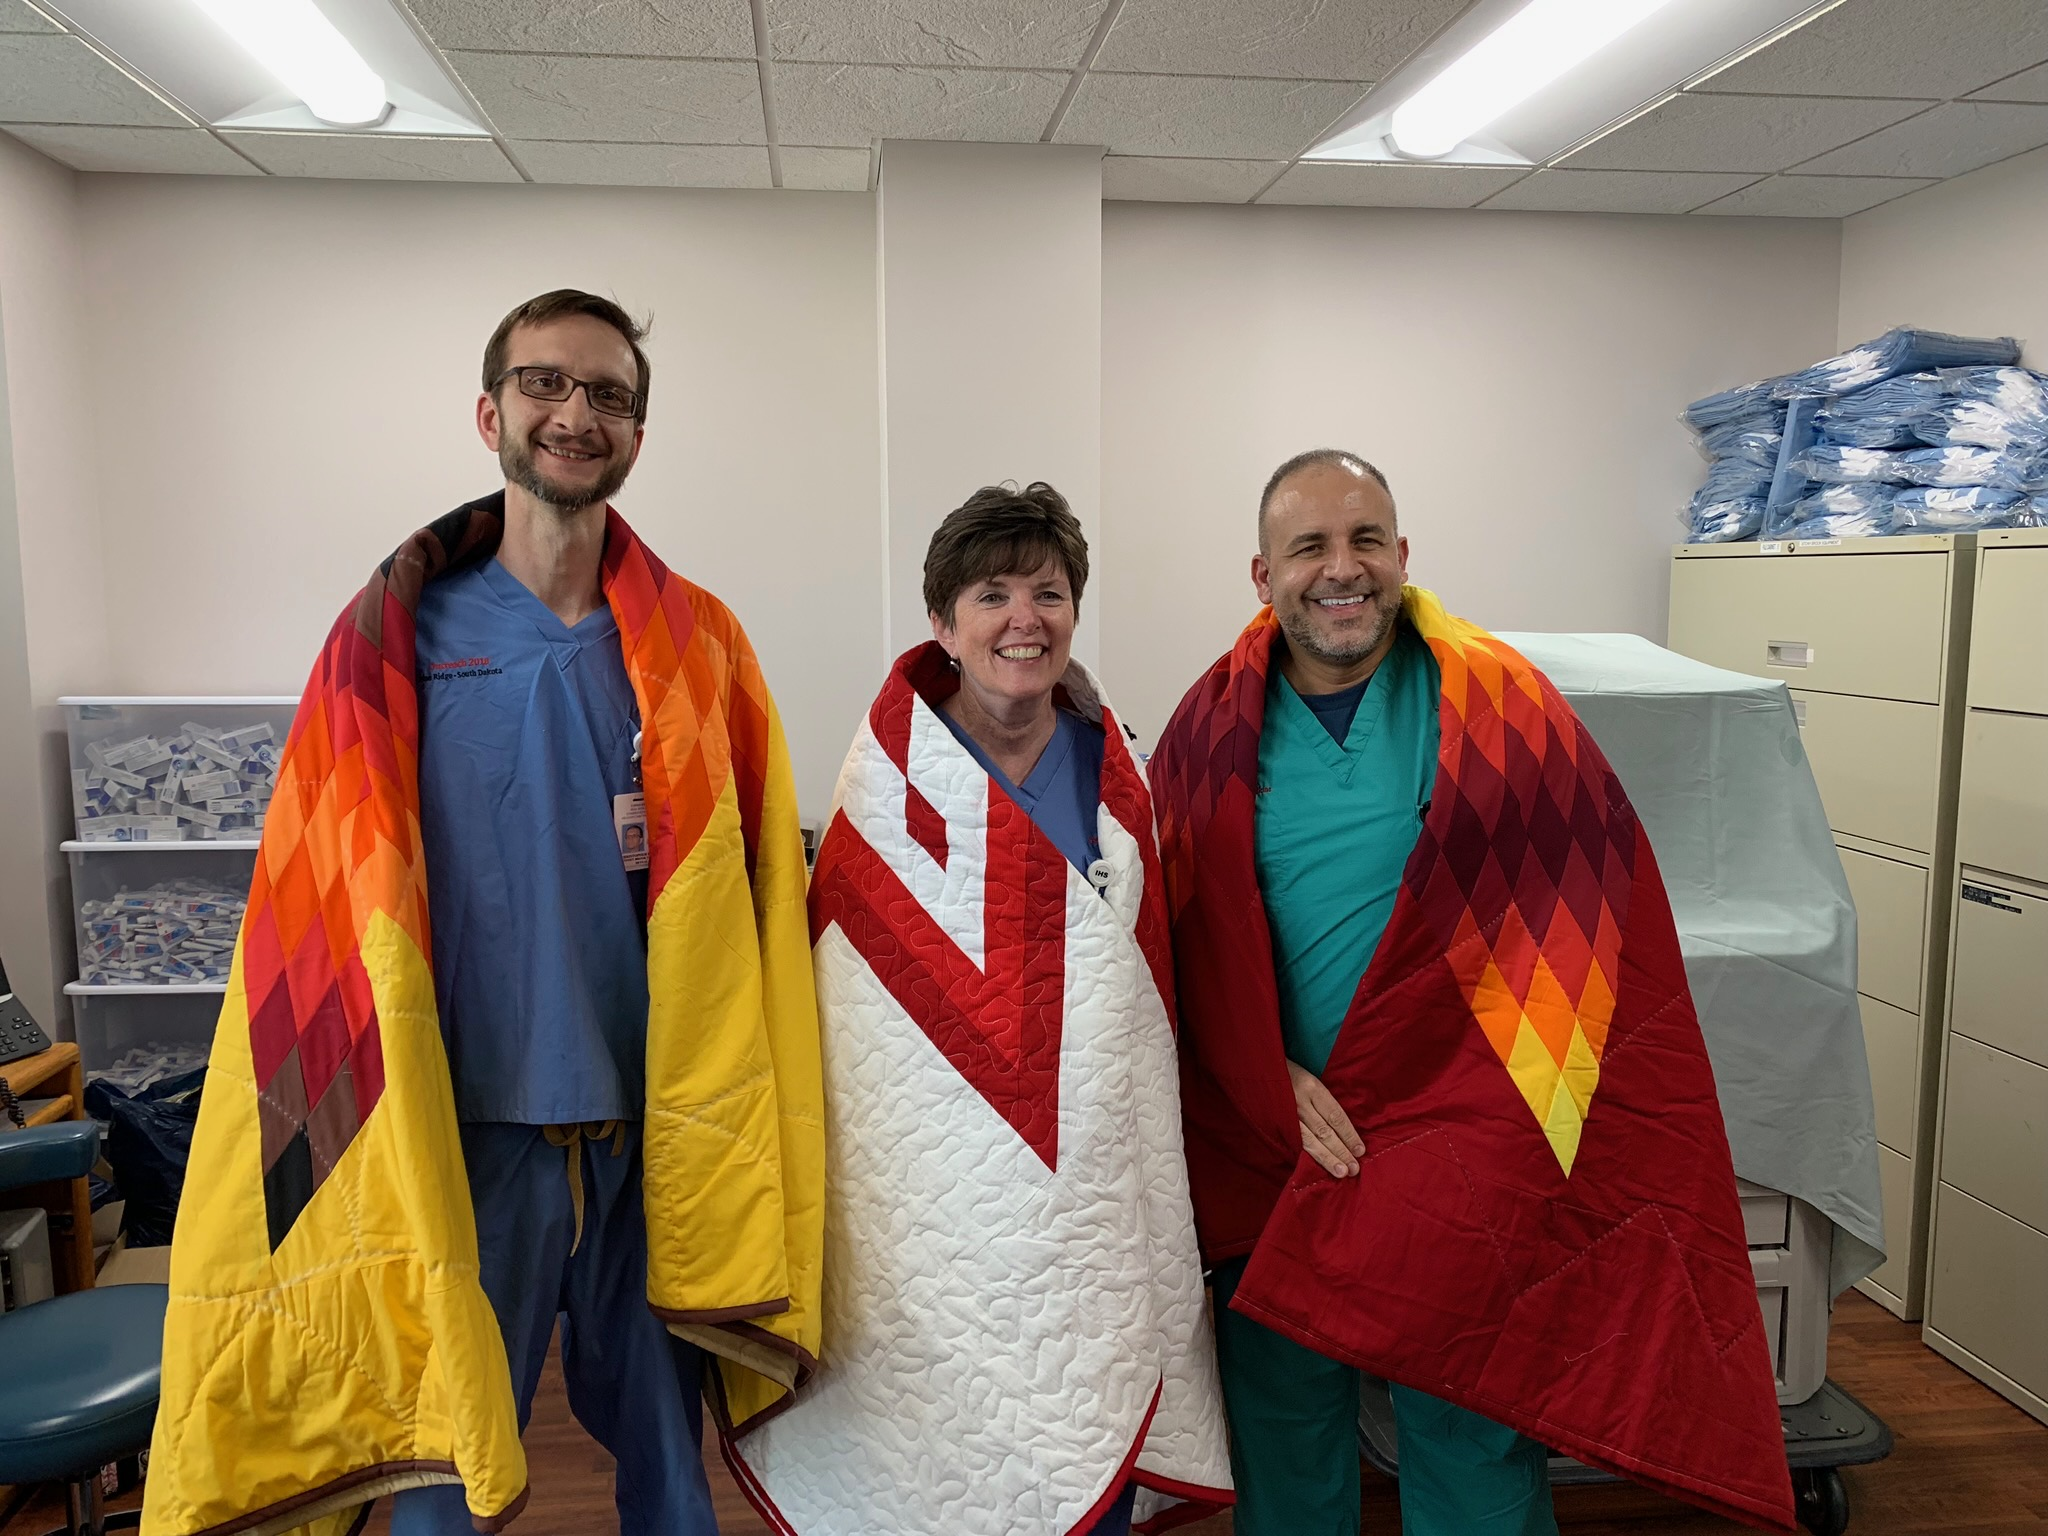 Christopher Noga, Dr. Mary Truhlar, and Dr. John Foti wrapped in star quilts presented by the Oglala Lakota Sioux tribe.